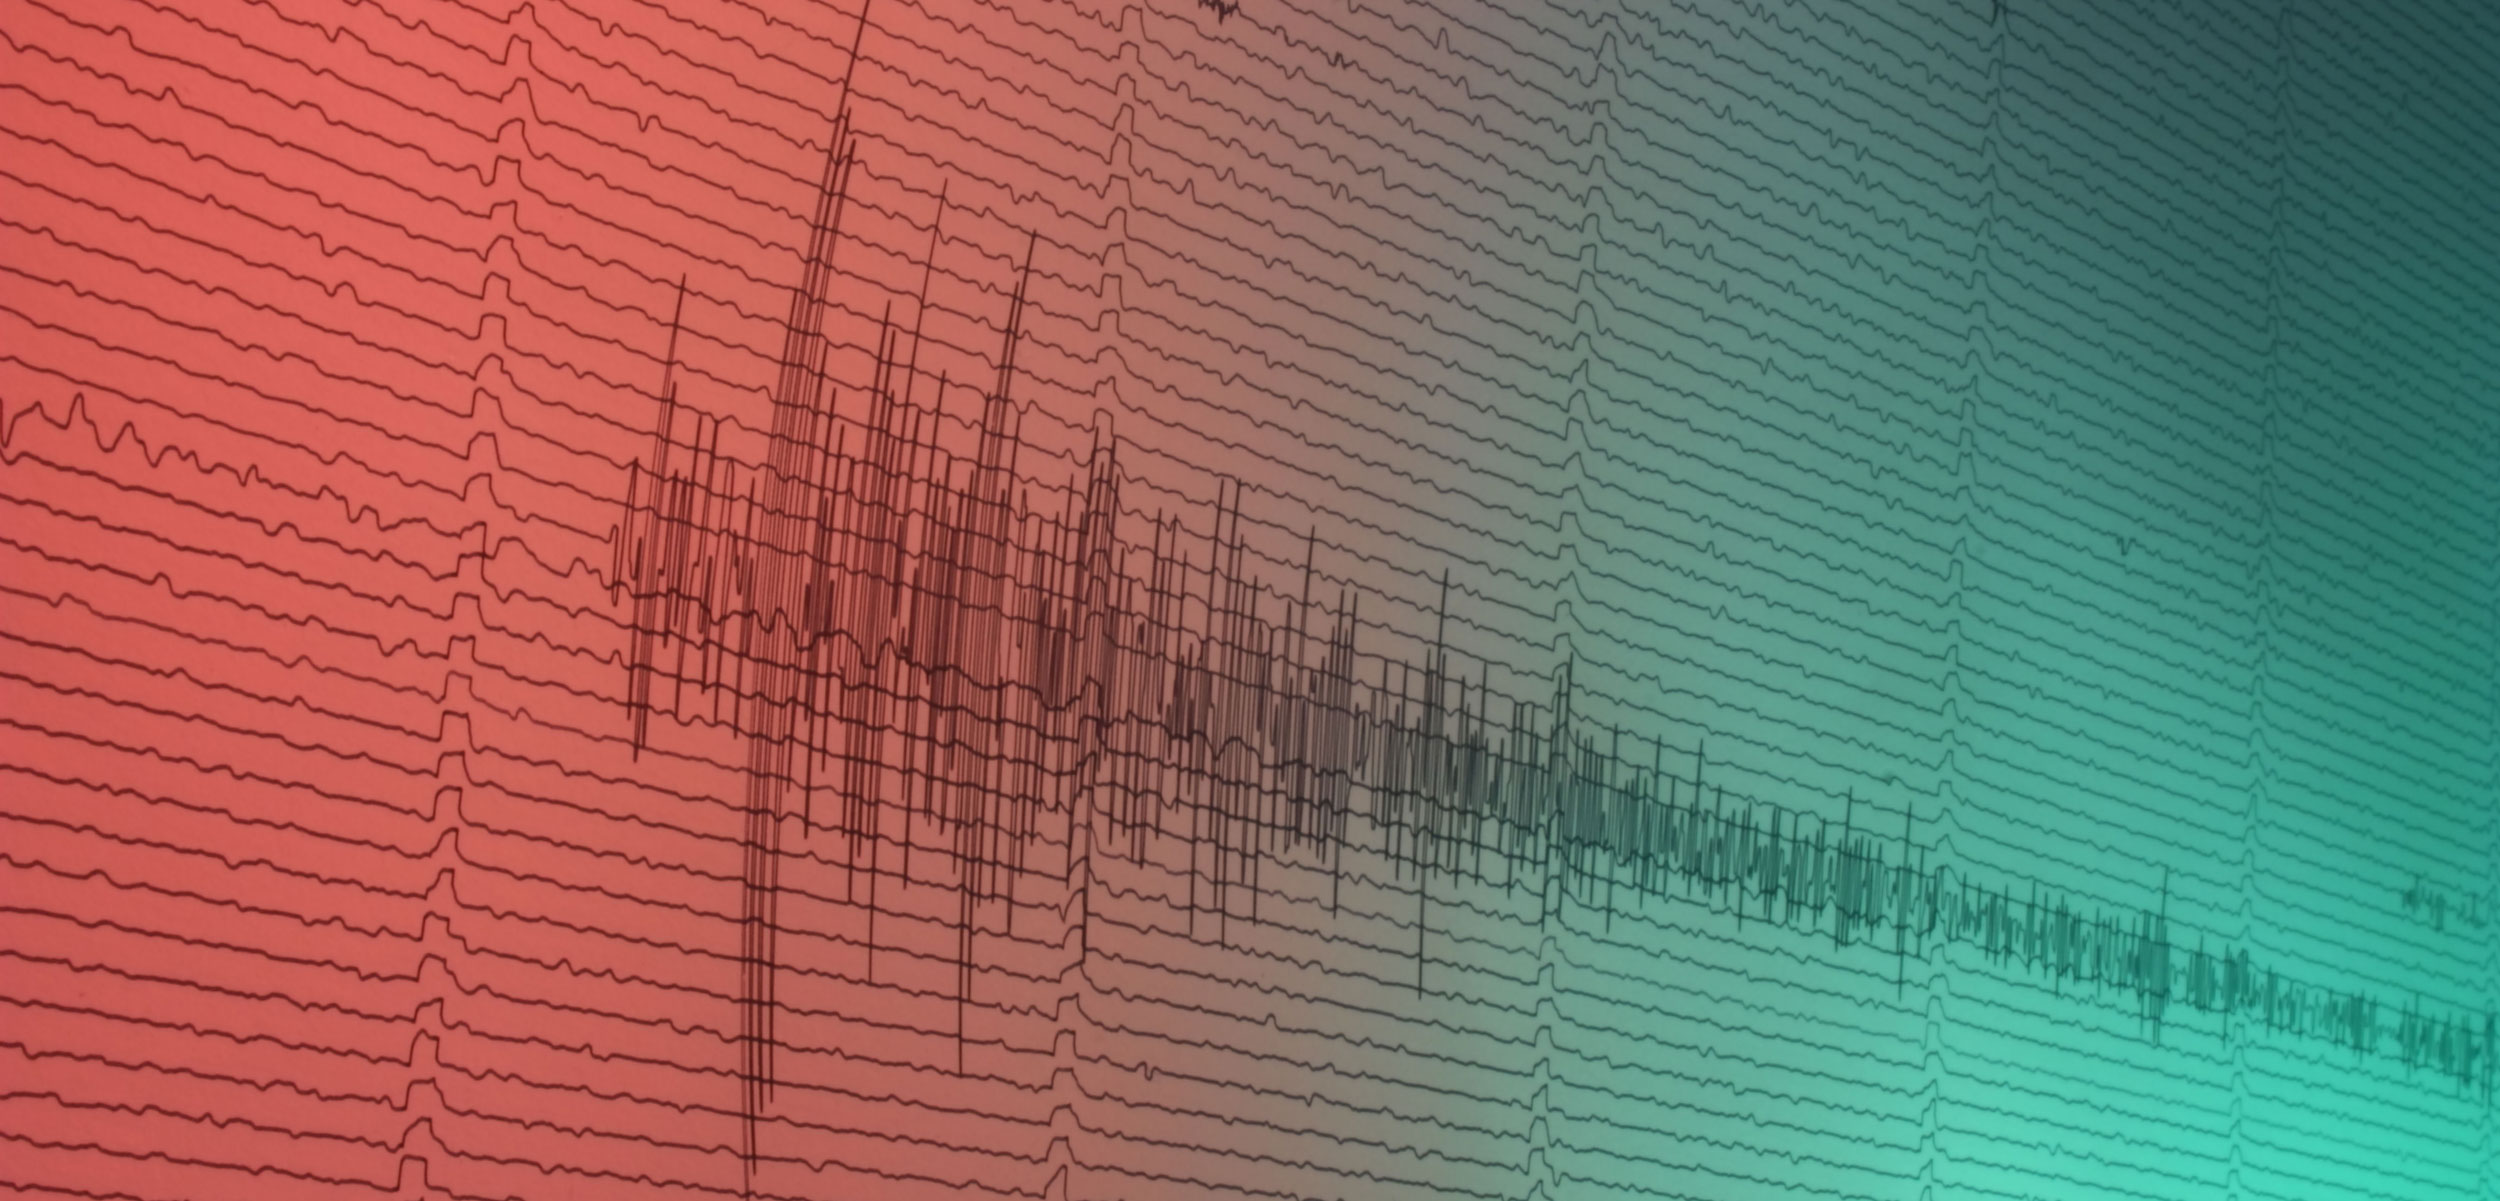 a large earthquake recorded on a seismograph